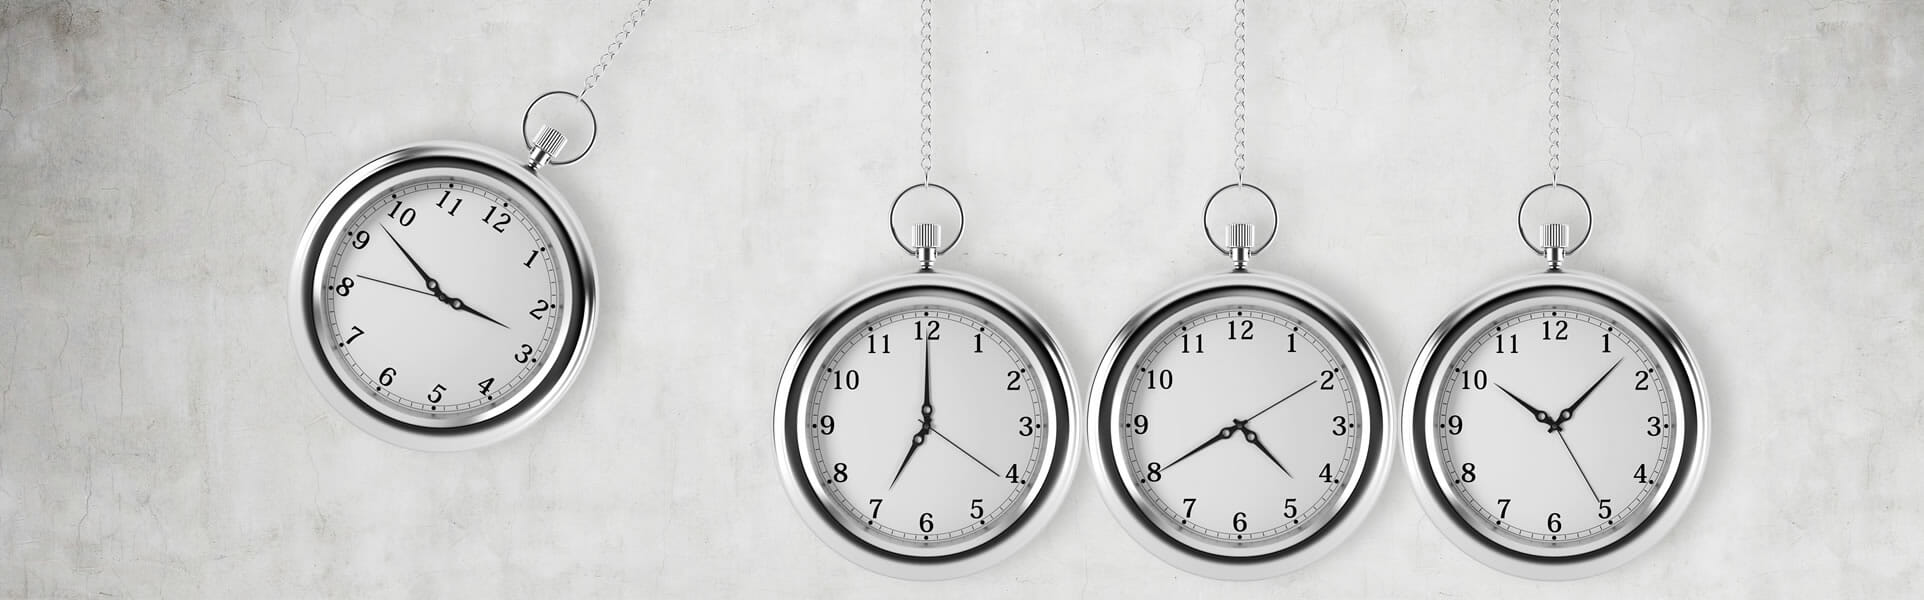 improving productivity - watches as pendulums